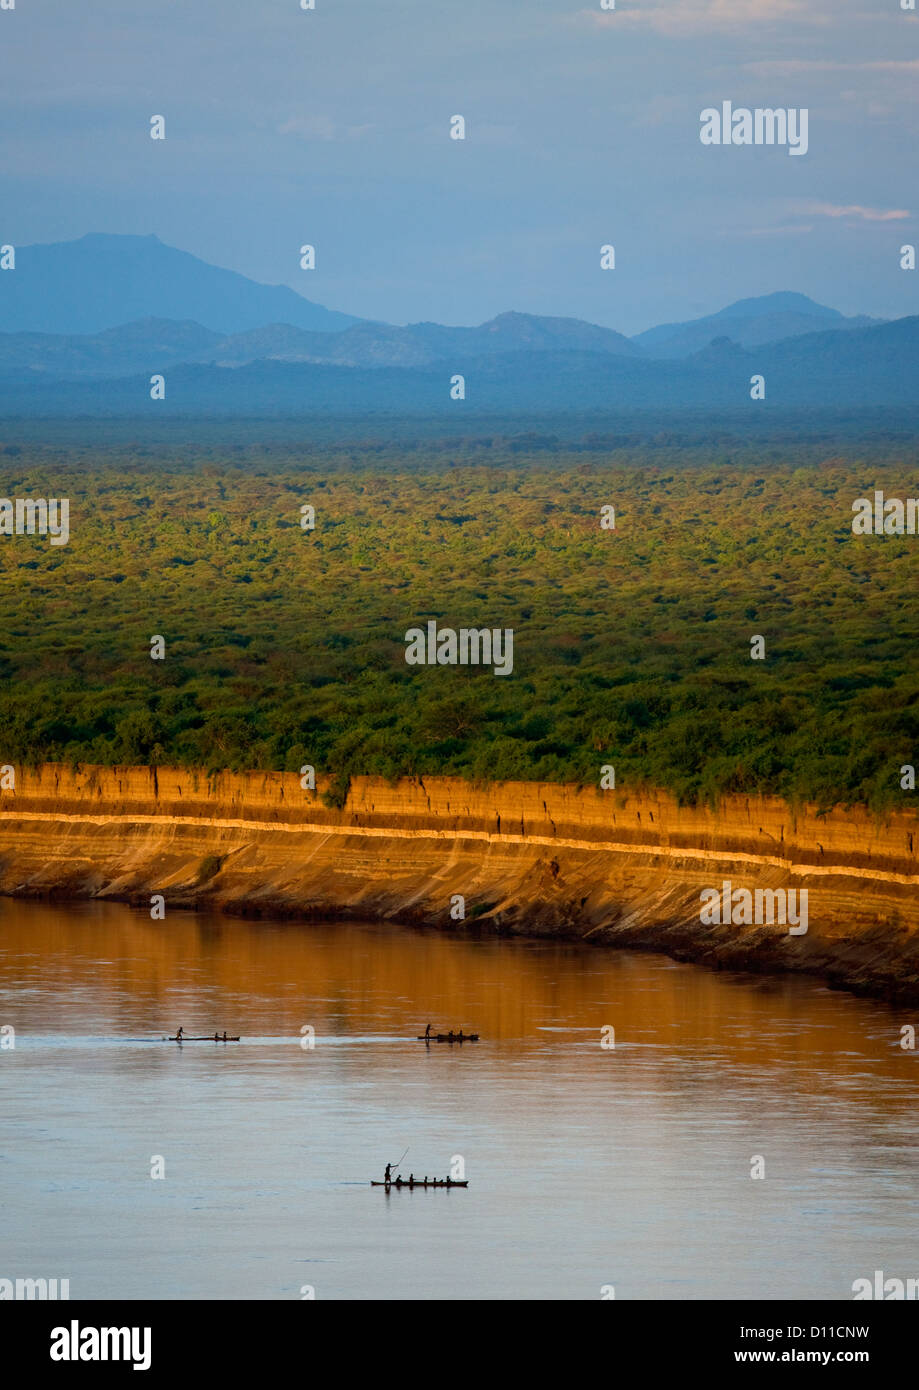 Boats Crossing Omo River With Mountains In The Background, Omo Valley, Ethiopia Stock Photo